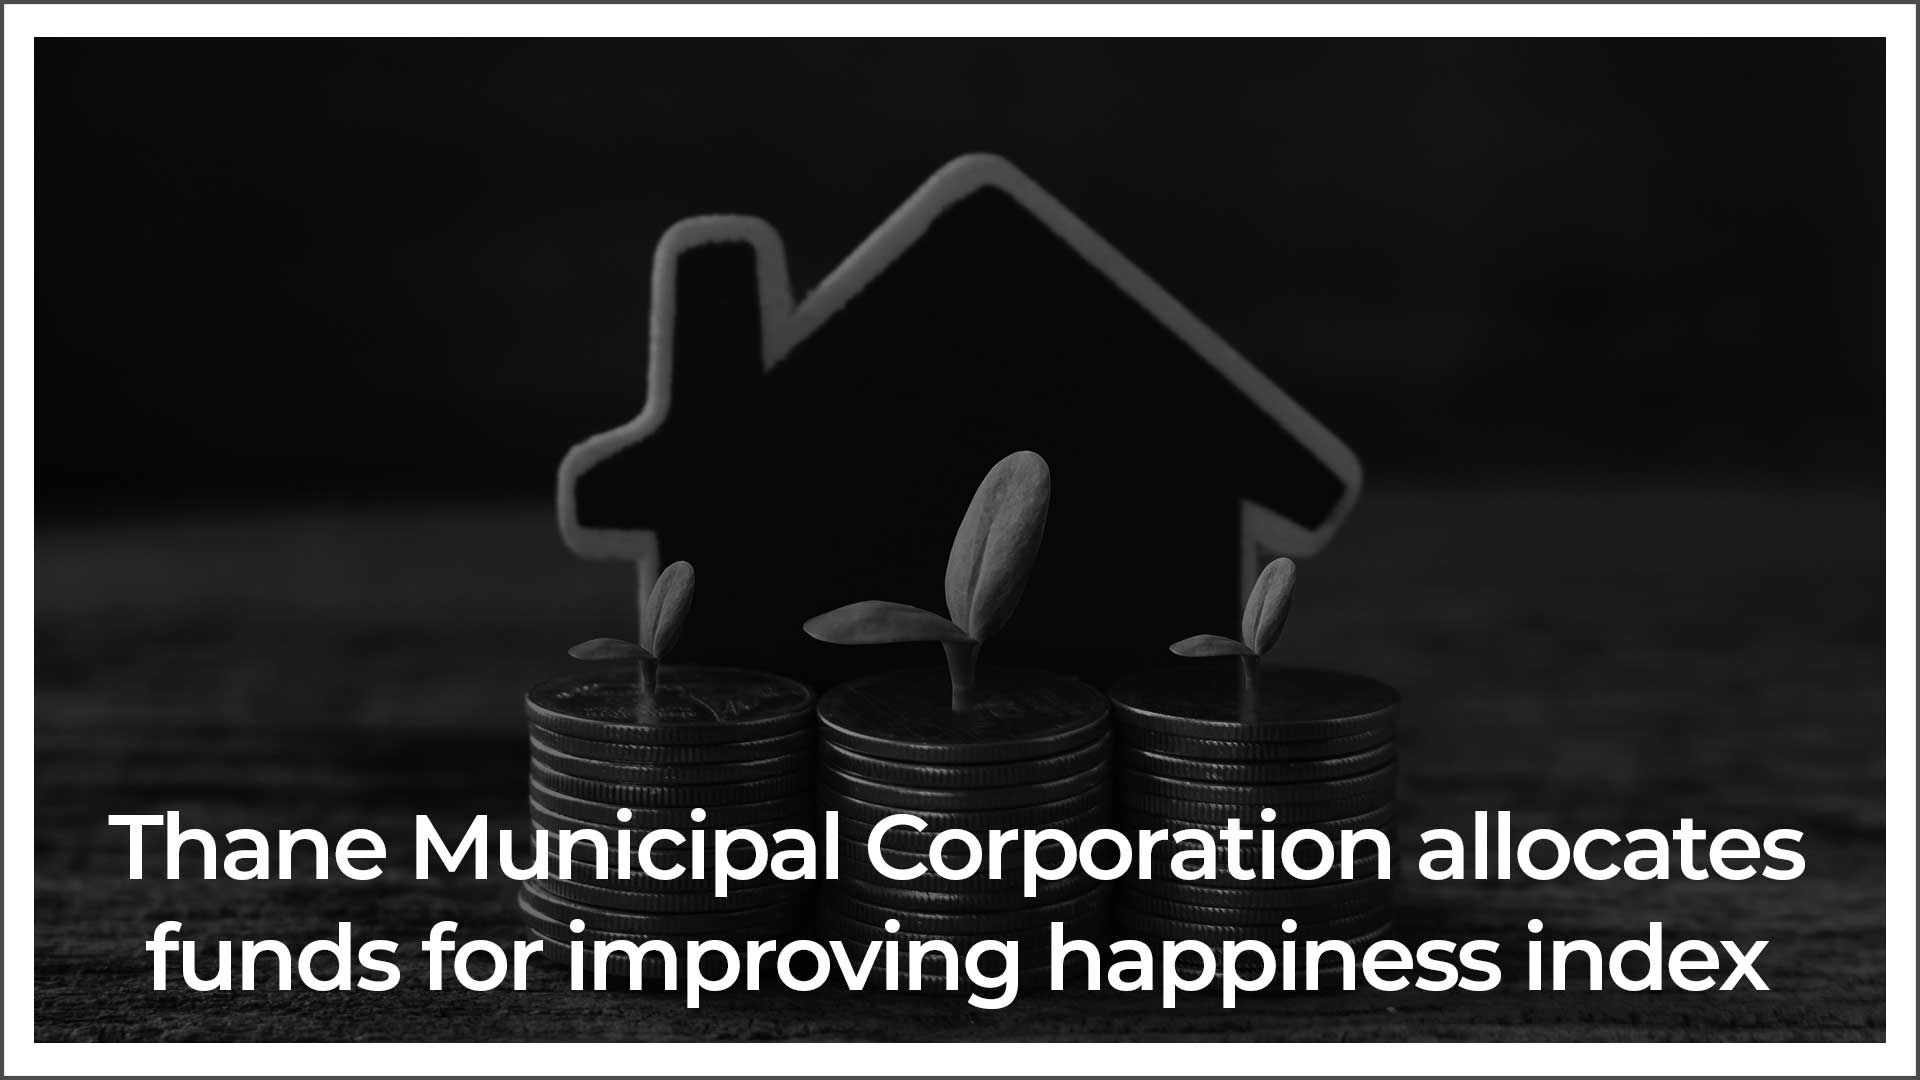 Creating Communities, Delivering Happiness: Dr. Niranjan Hiranandani